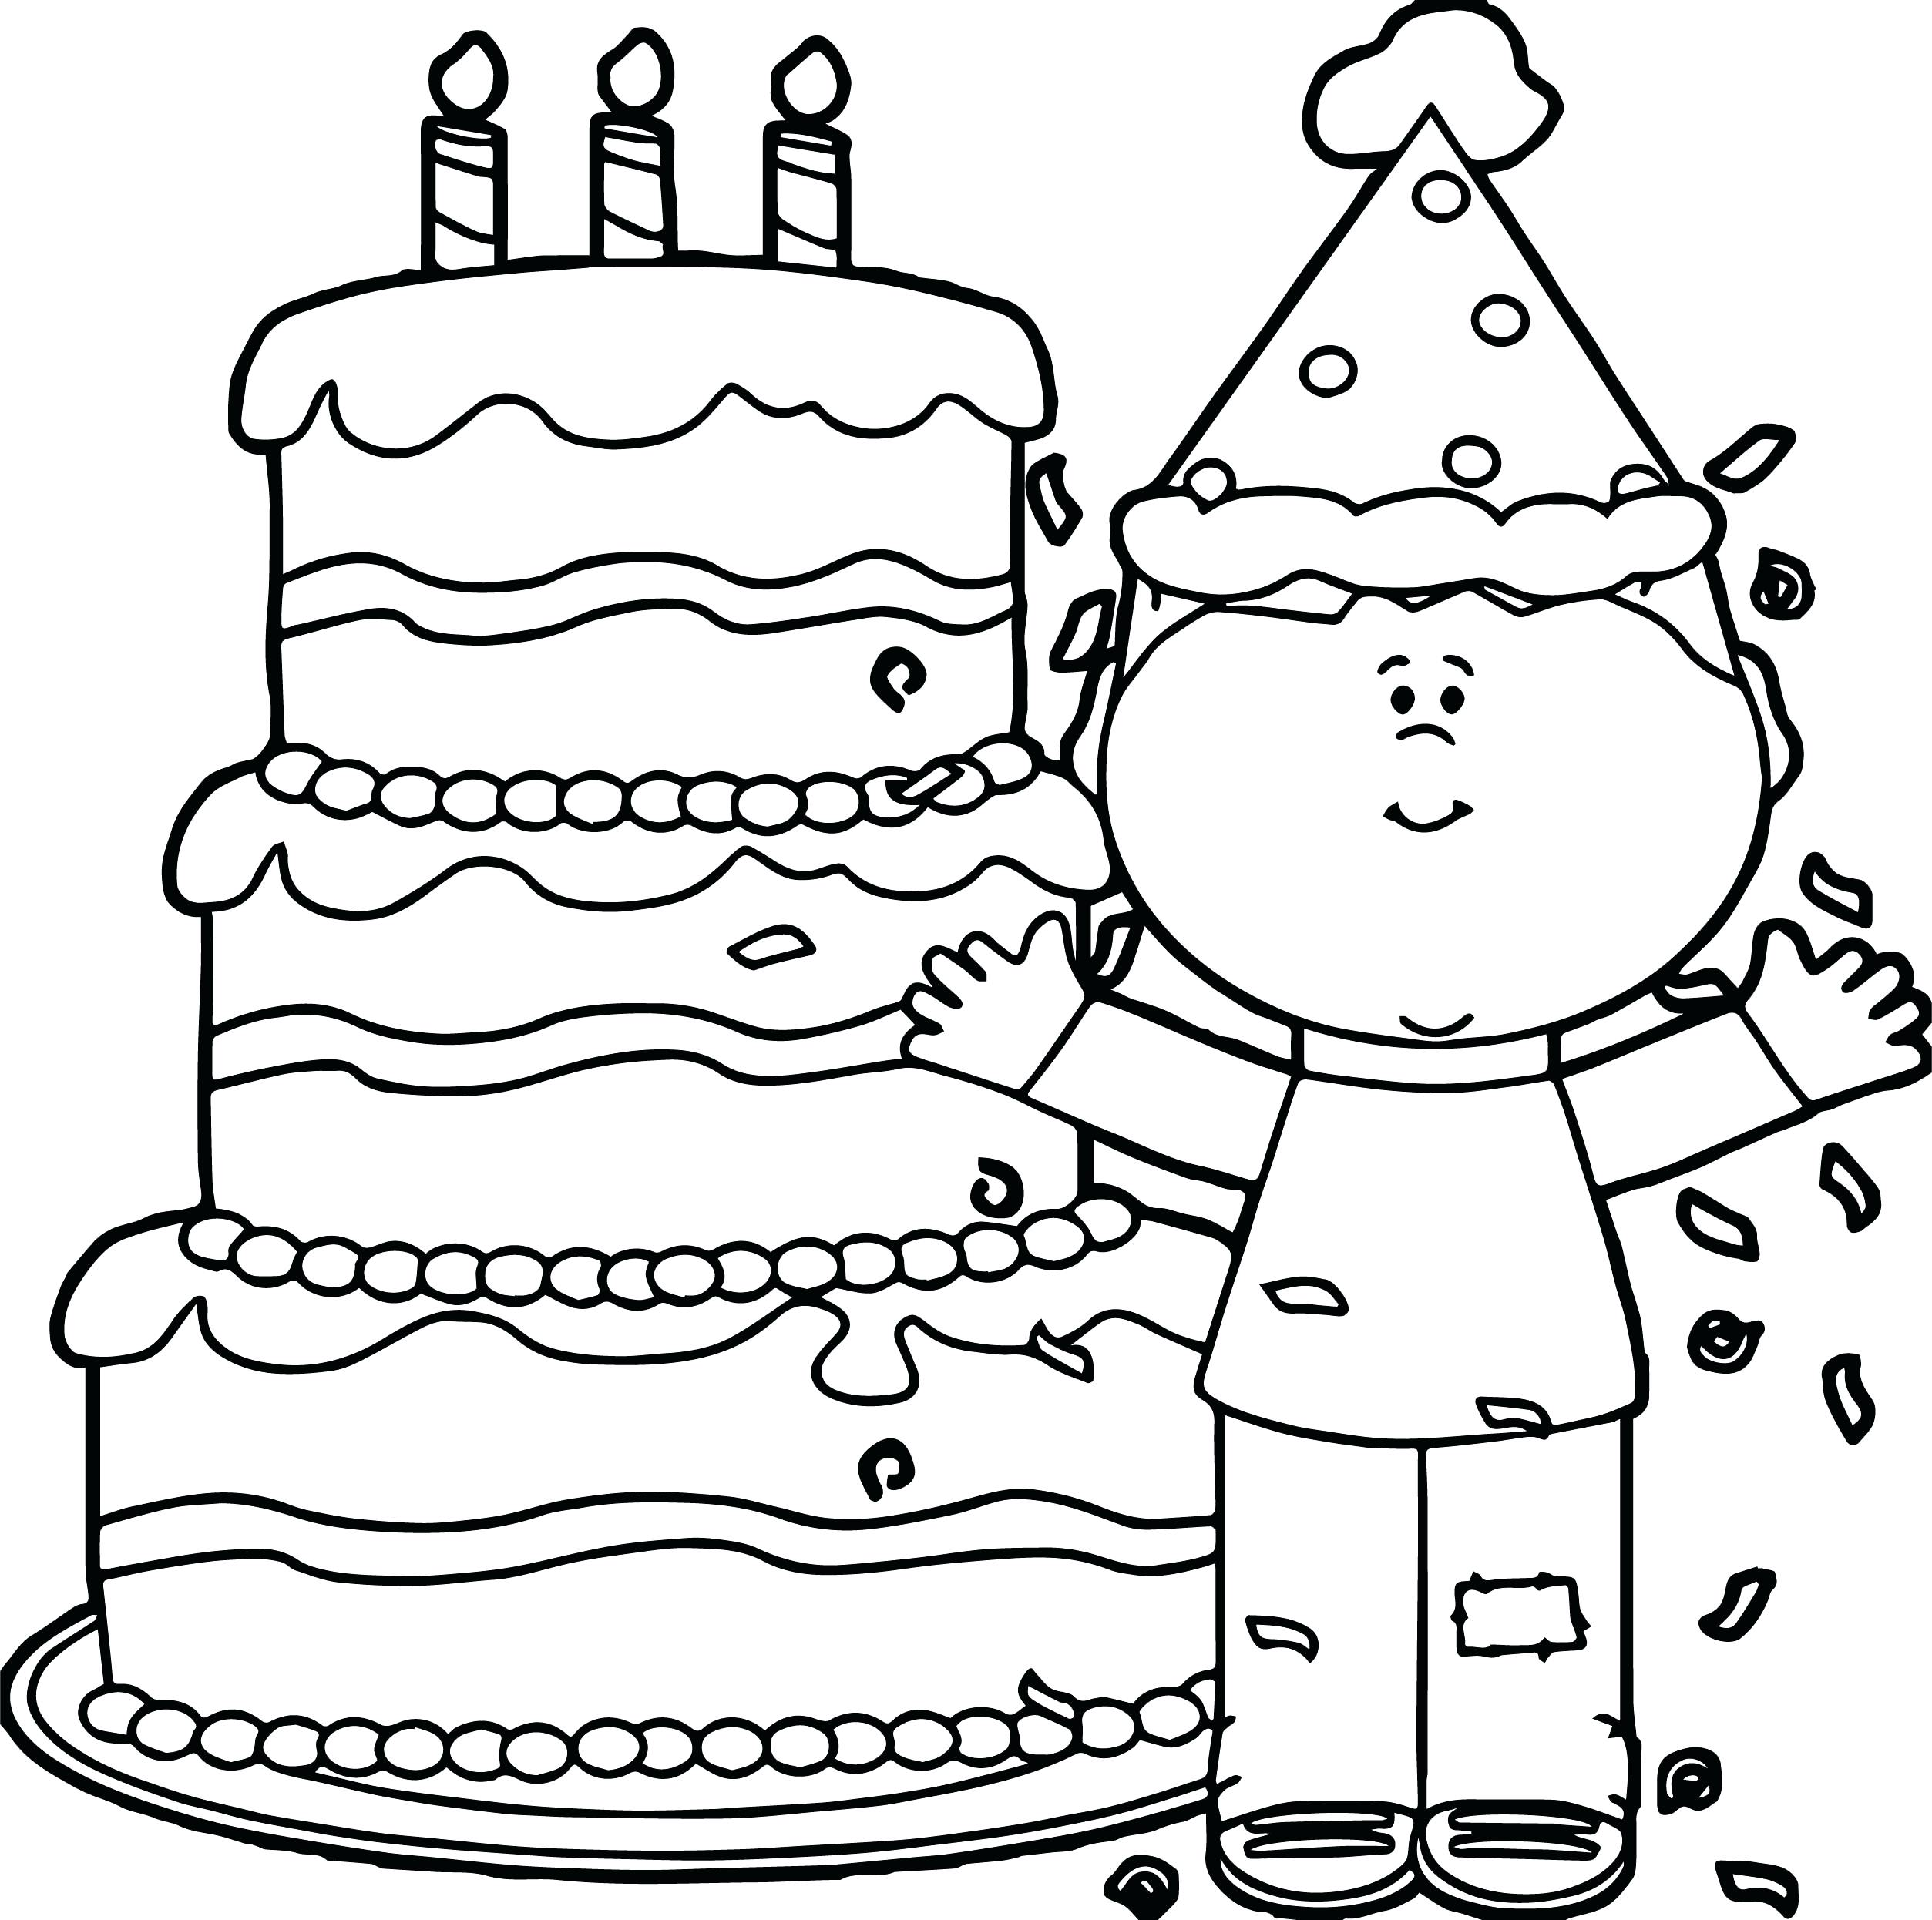 happy birthday teacher coloring pages ; fresh-coloring-pages-happy-birthday-coloring-page-good-about-remodel-of-happy-birthday-coloring-pages-for-teachers